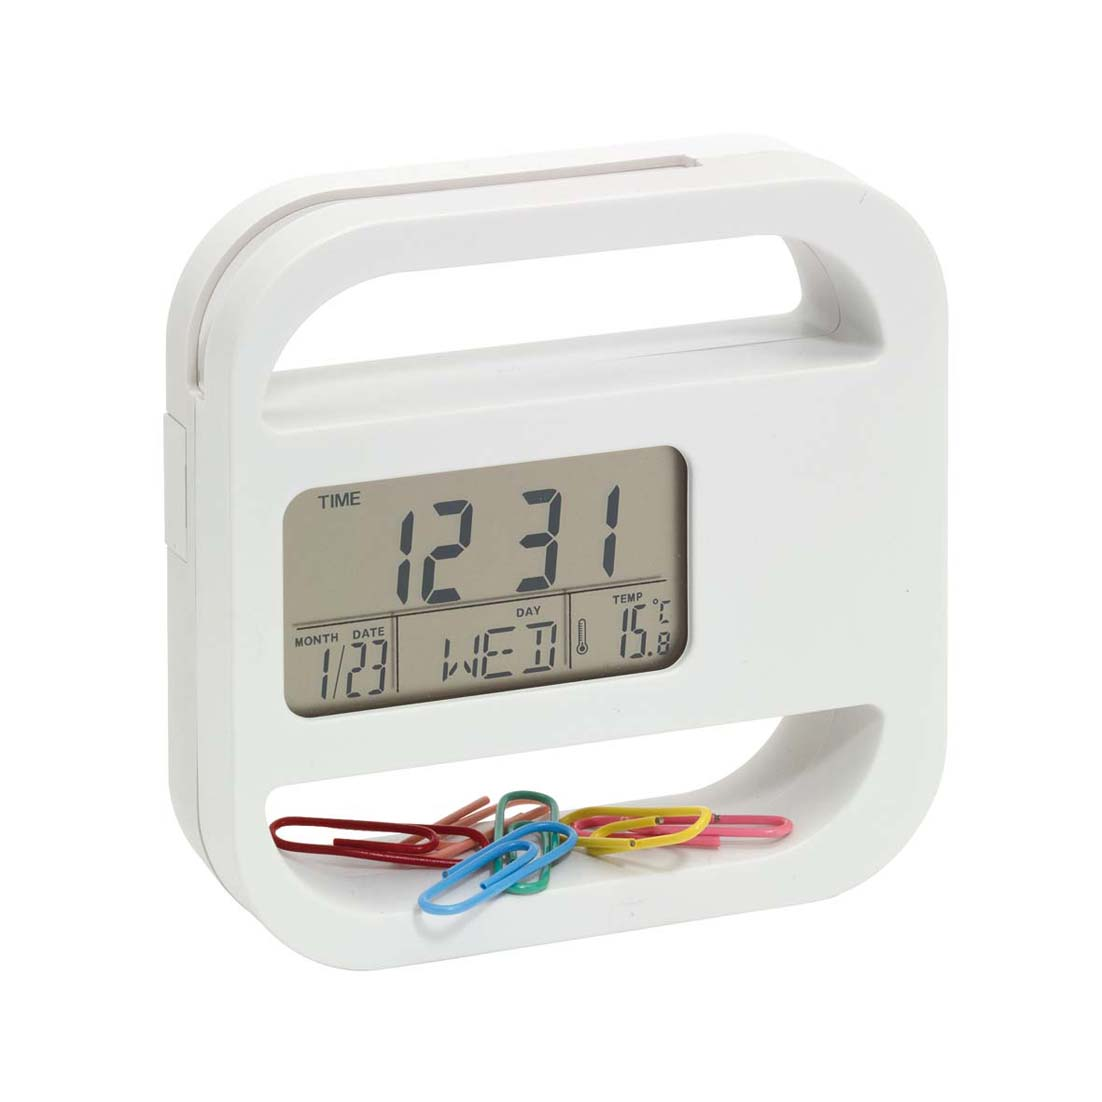 Digital clock 'Helpdesk' ins-0401338